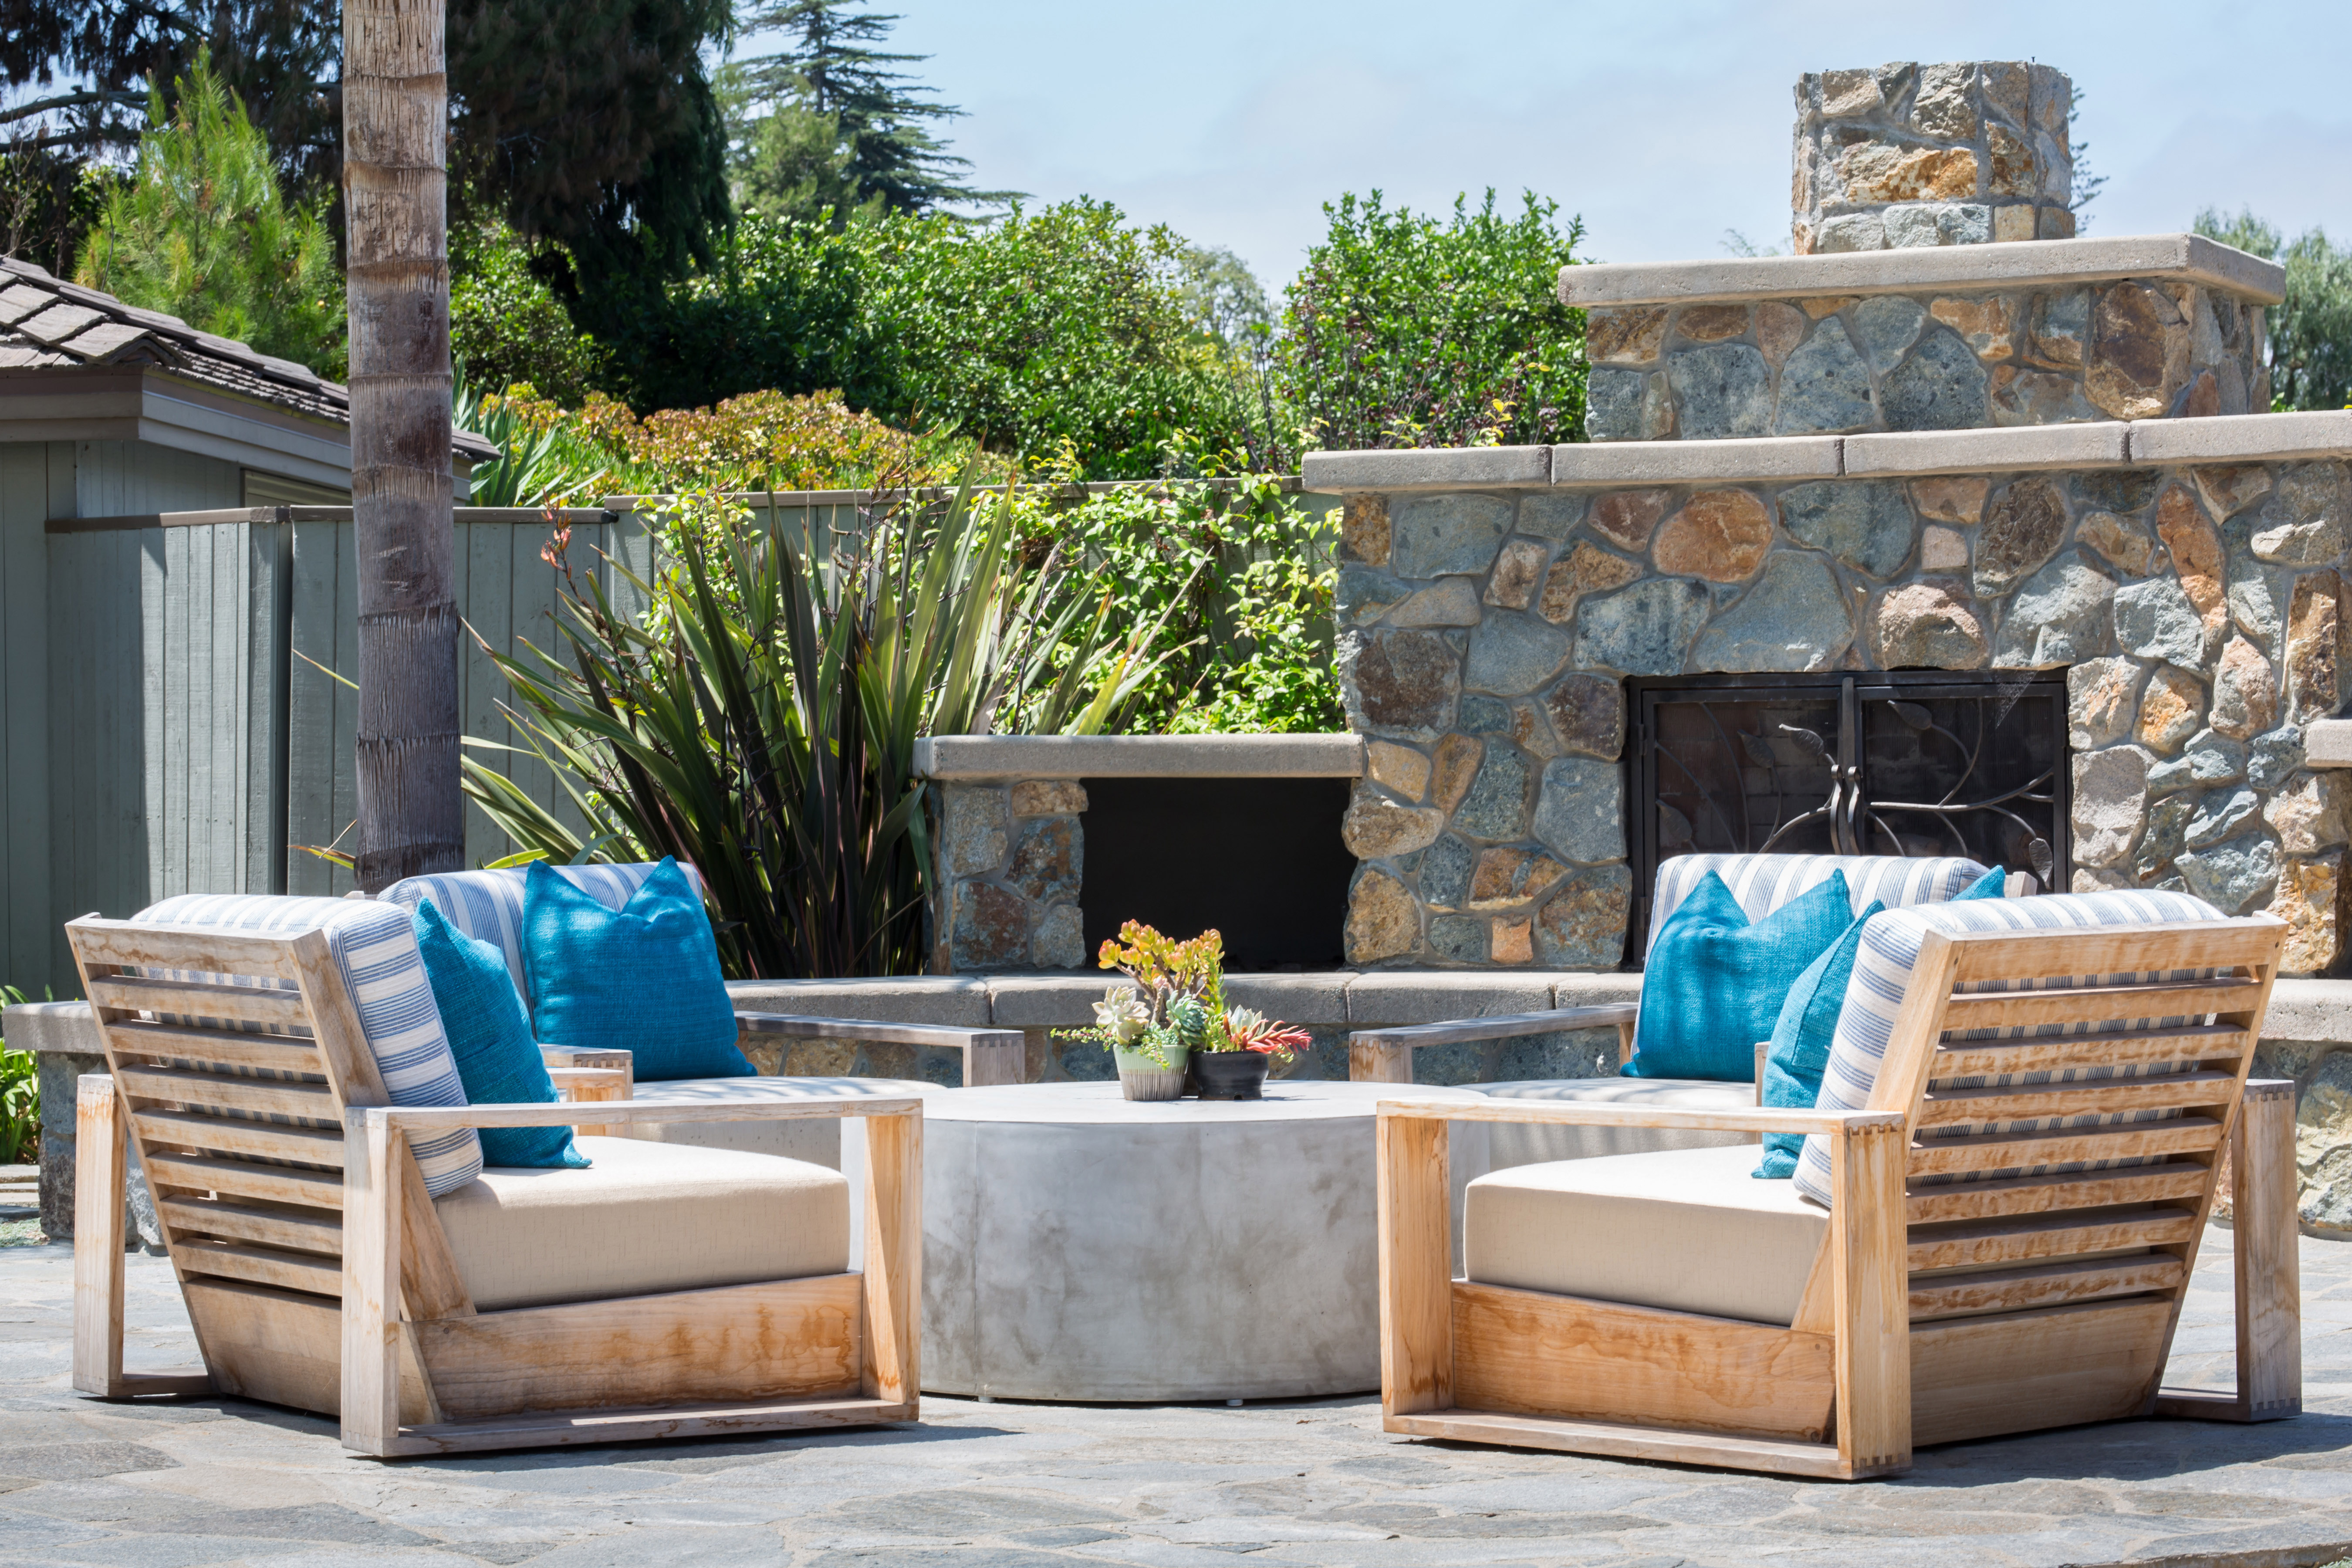 Fire pits help transition from day to night so you can keep the party going strong!